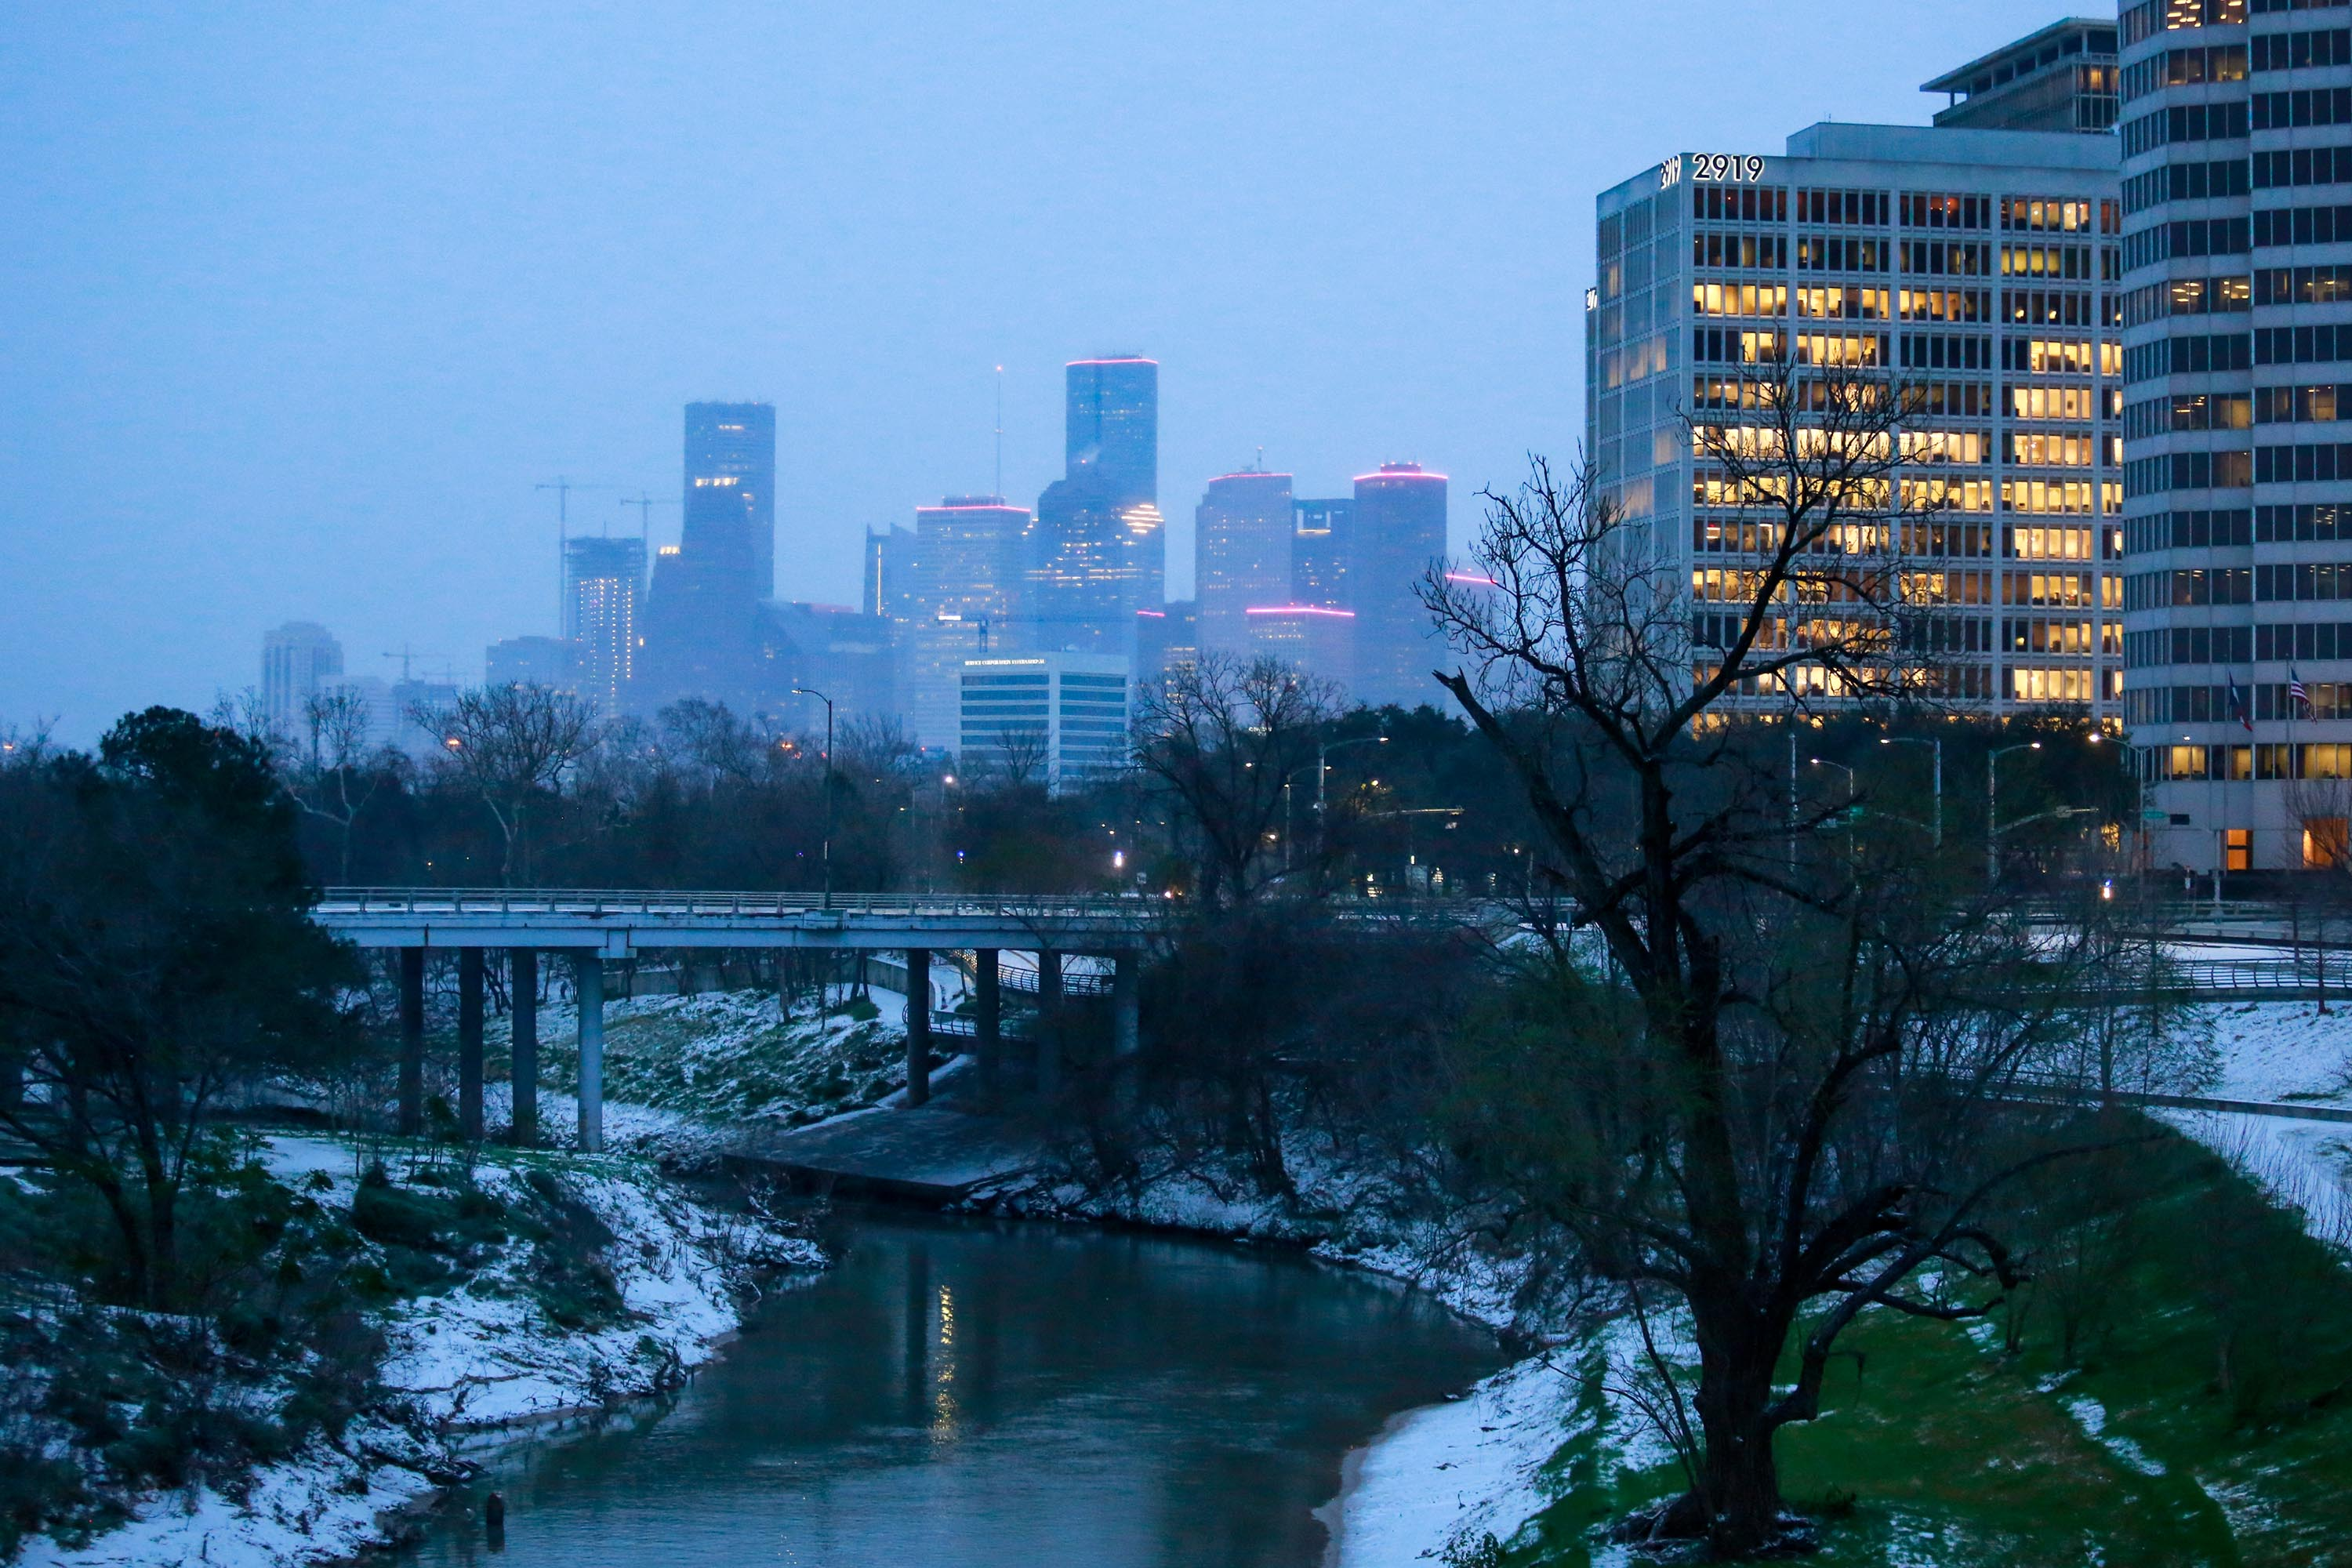 The Houston skyline seen from Buffalo Bayou Park early on the morning of Monday, February 15, after the snow storm.